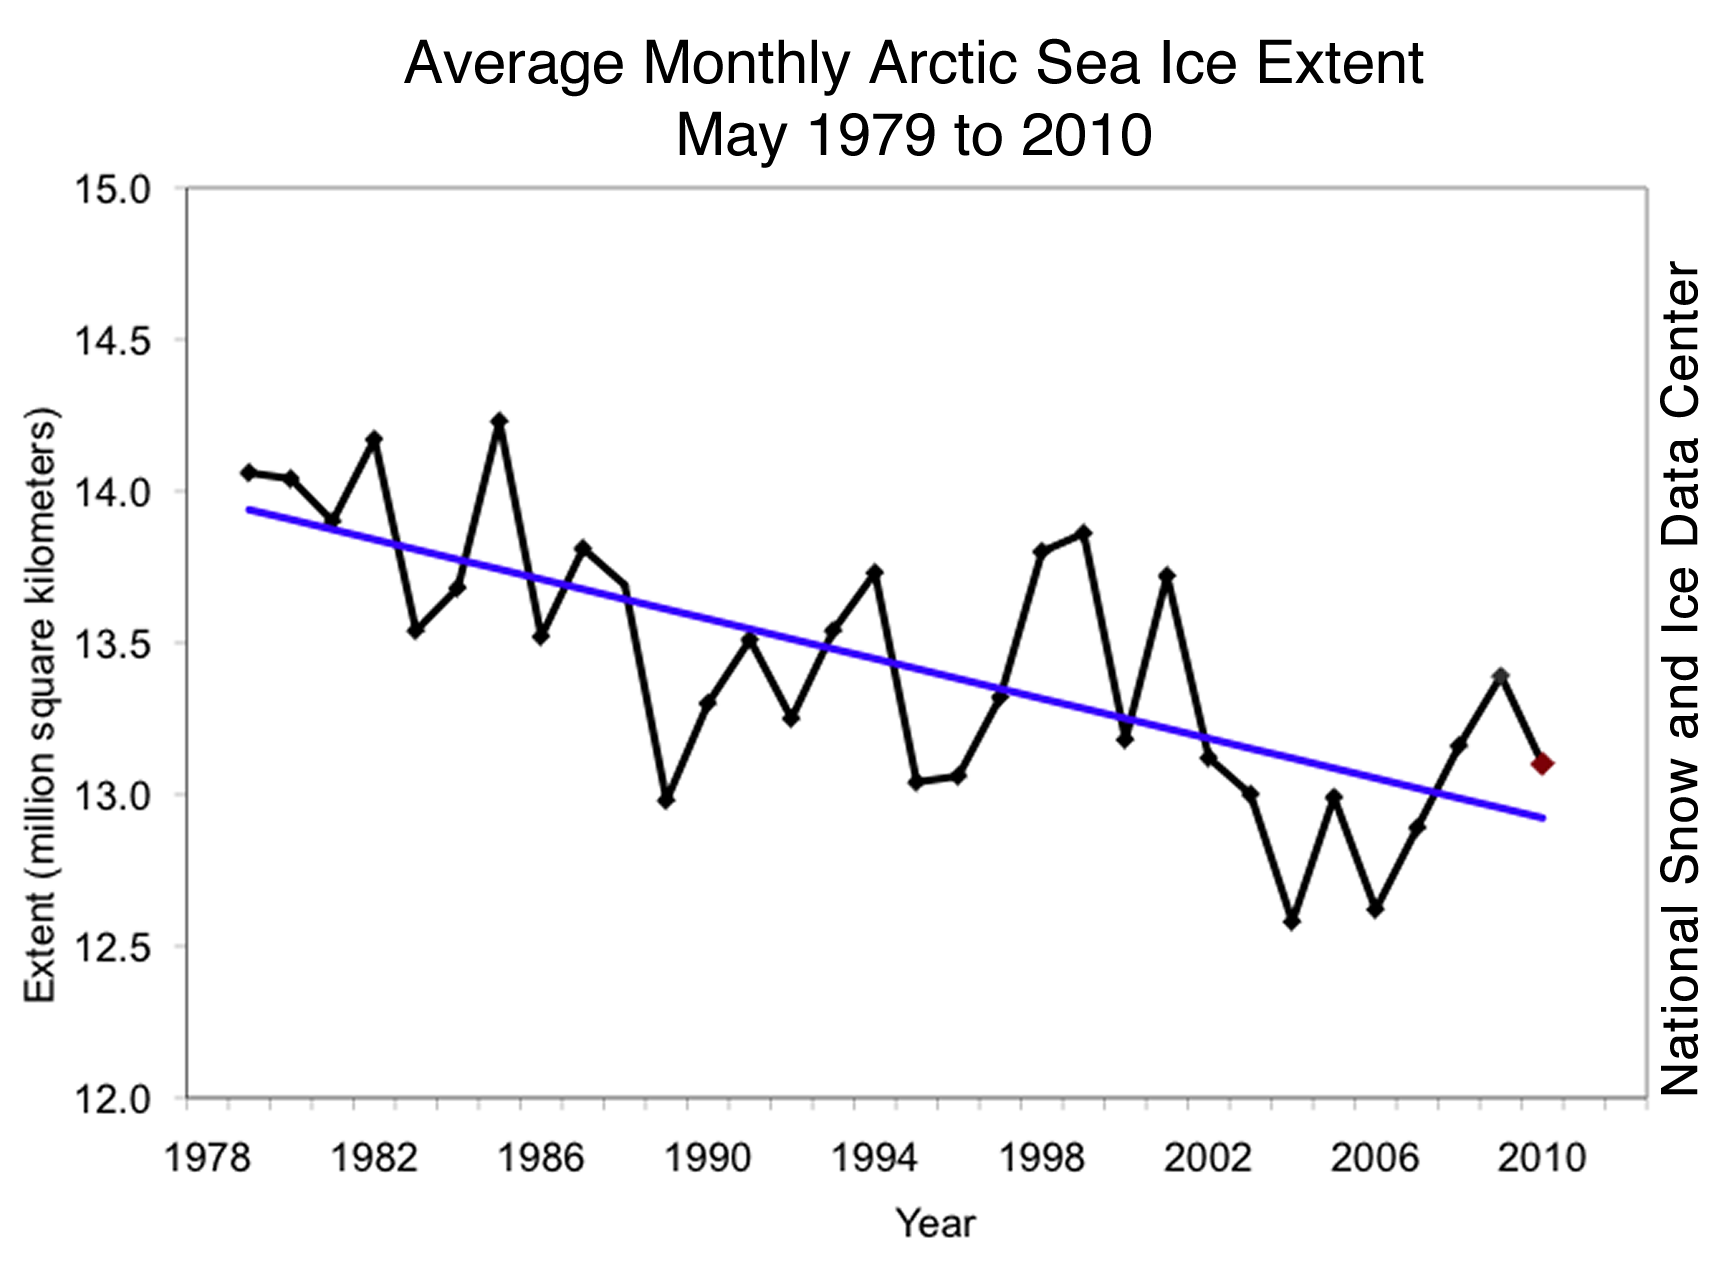 Average Monthly Arctic Sea Ice Extent 1979-2010